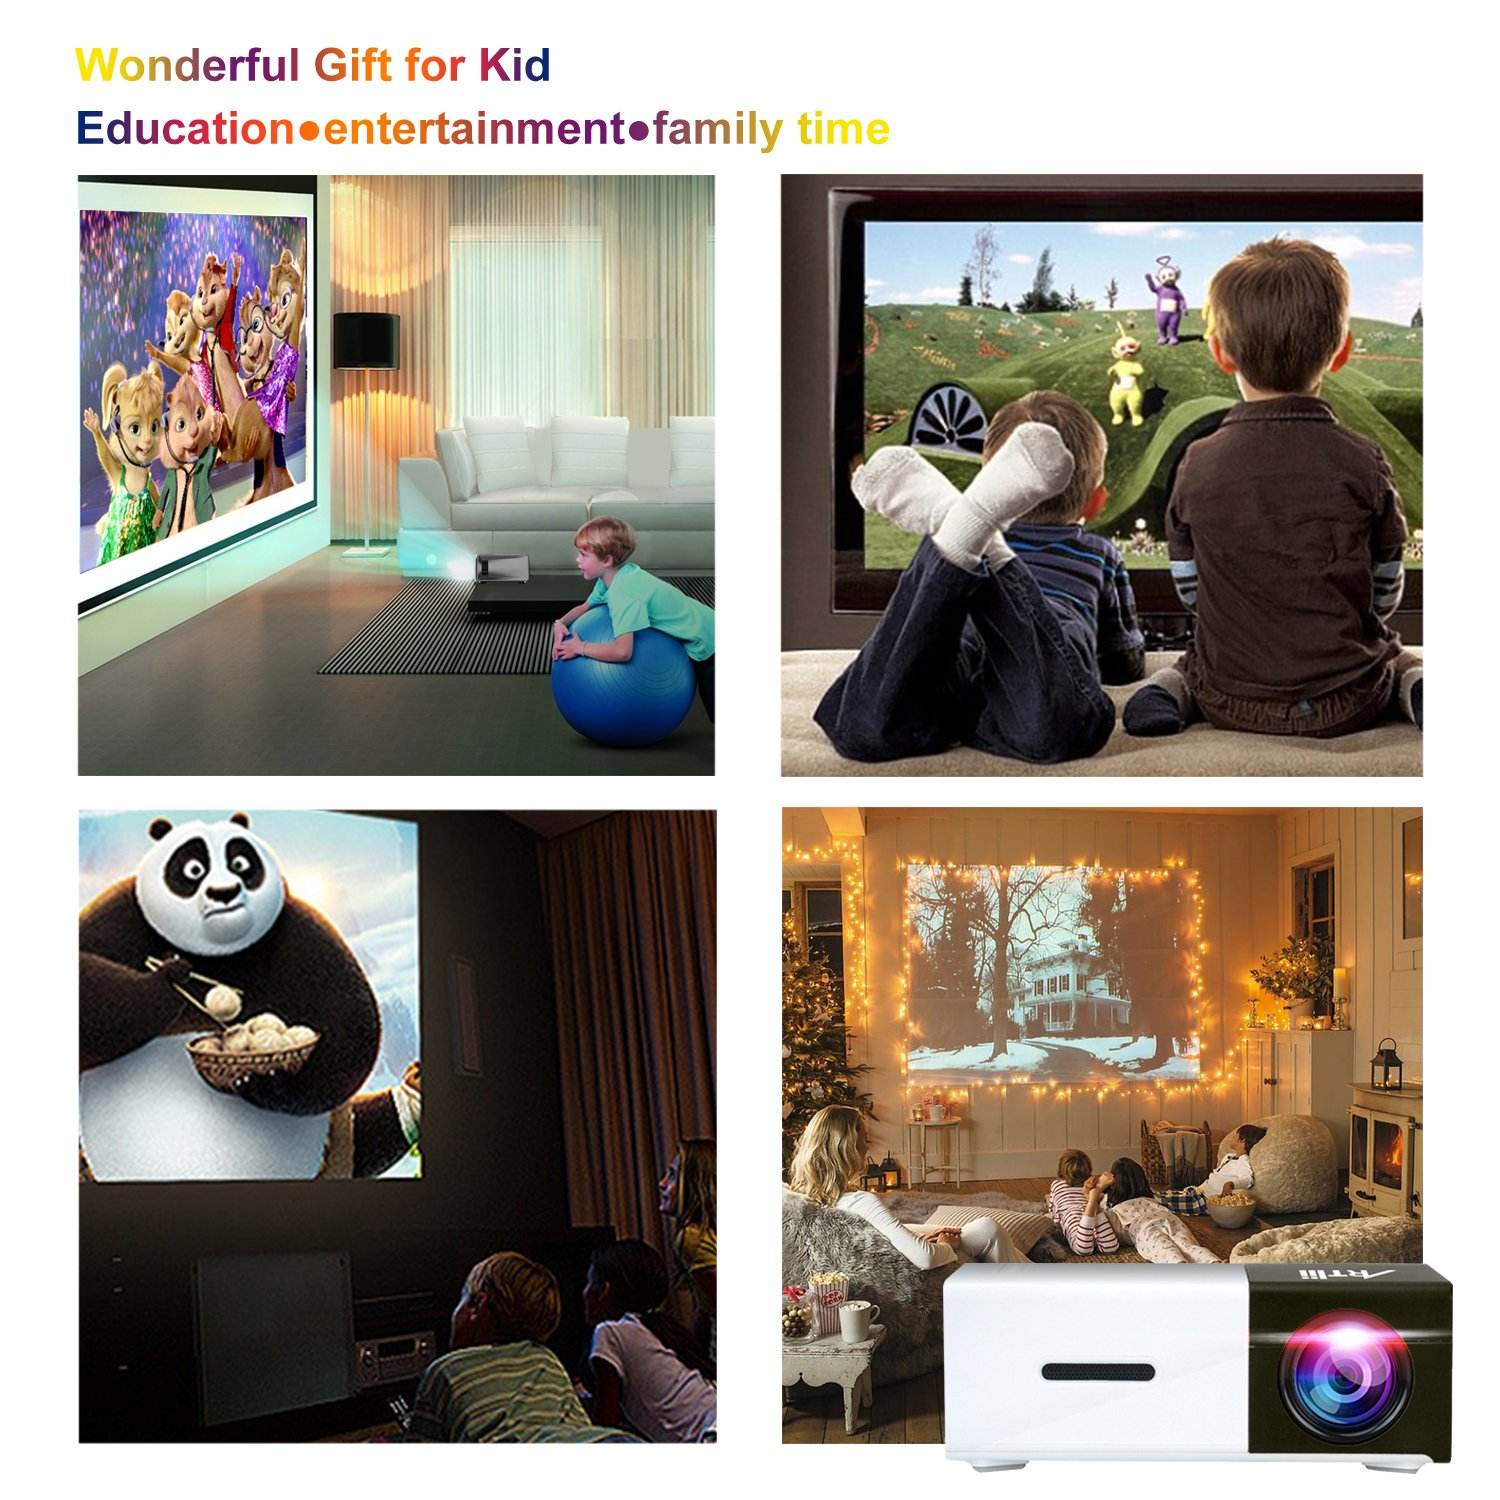 Pico Projector, Artlii Movie iPhone Mini Pocket Laptop Smartphone Projector for Home Cinema Video Party - Black&White by ARTlii (Image #6)